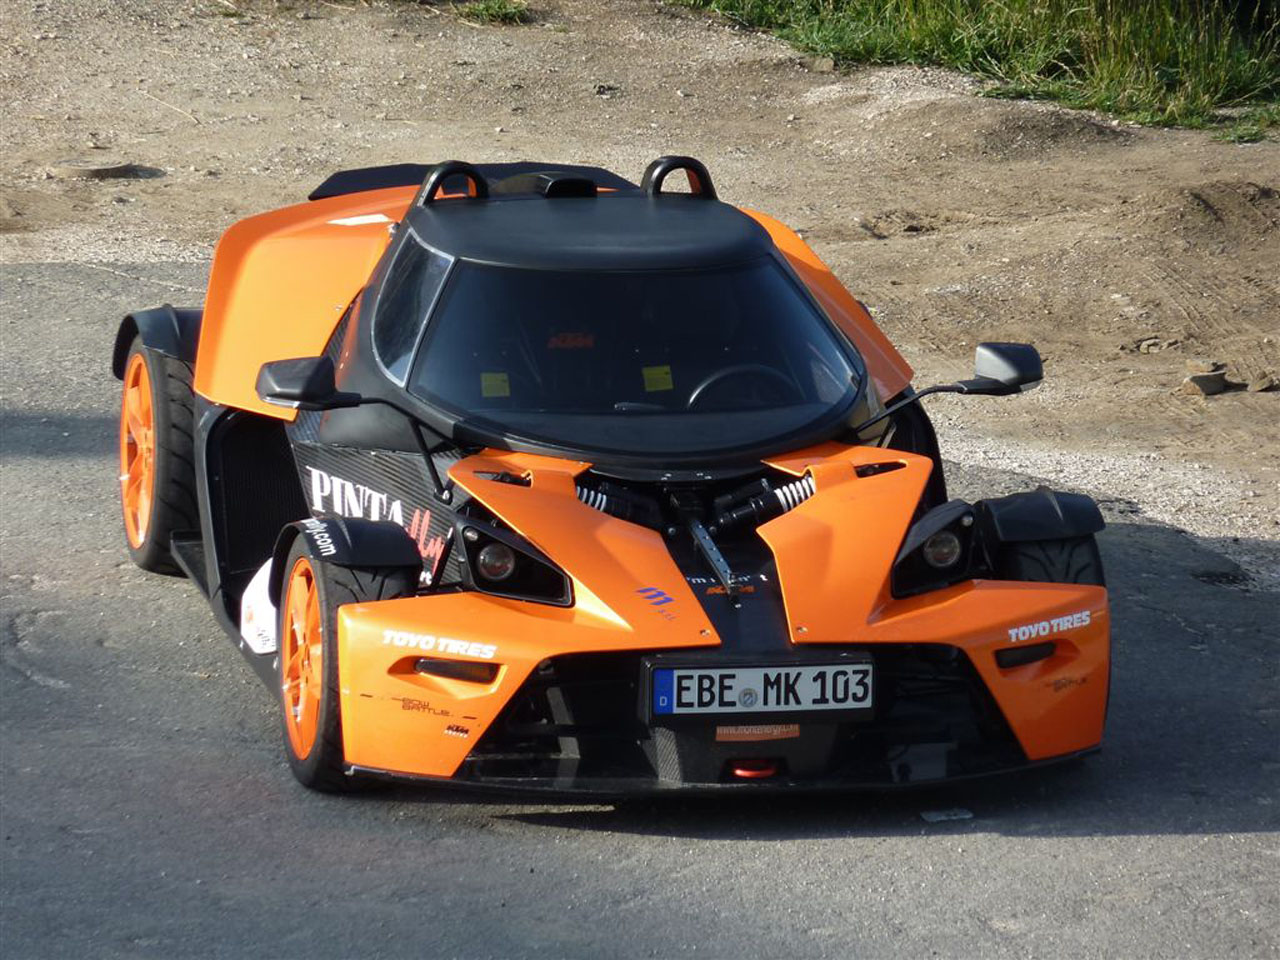 Ktm X Bow Monte Carlo By Montenergy Photos 関連フォトギャラリー